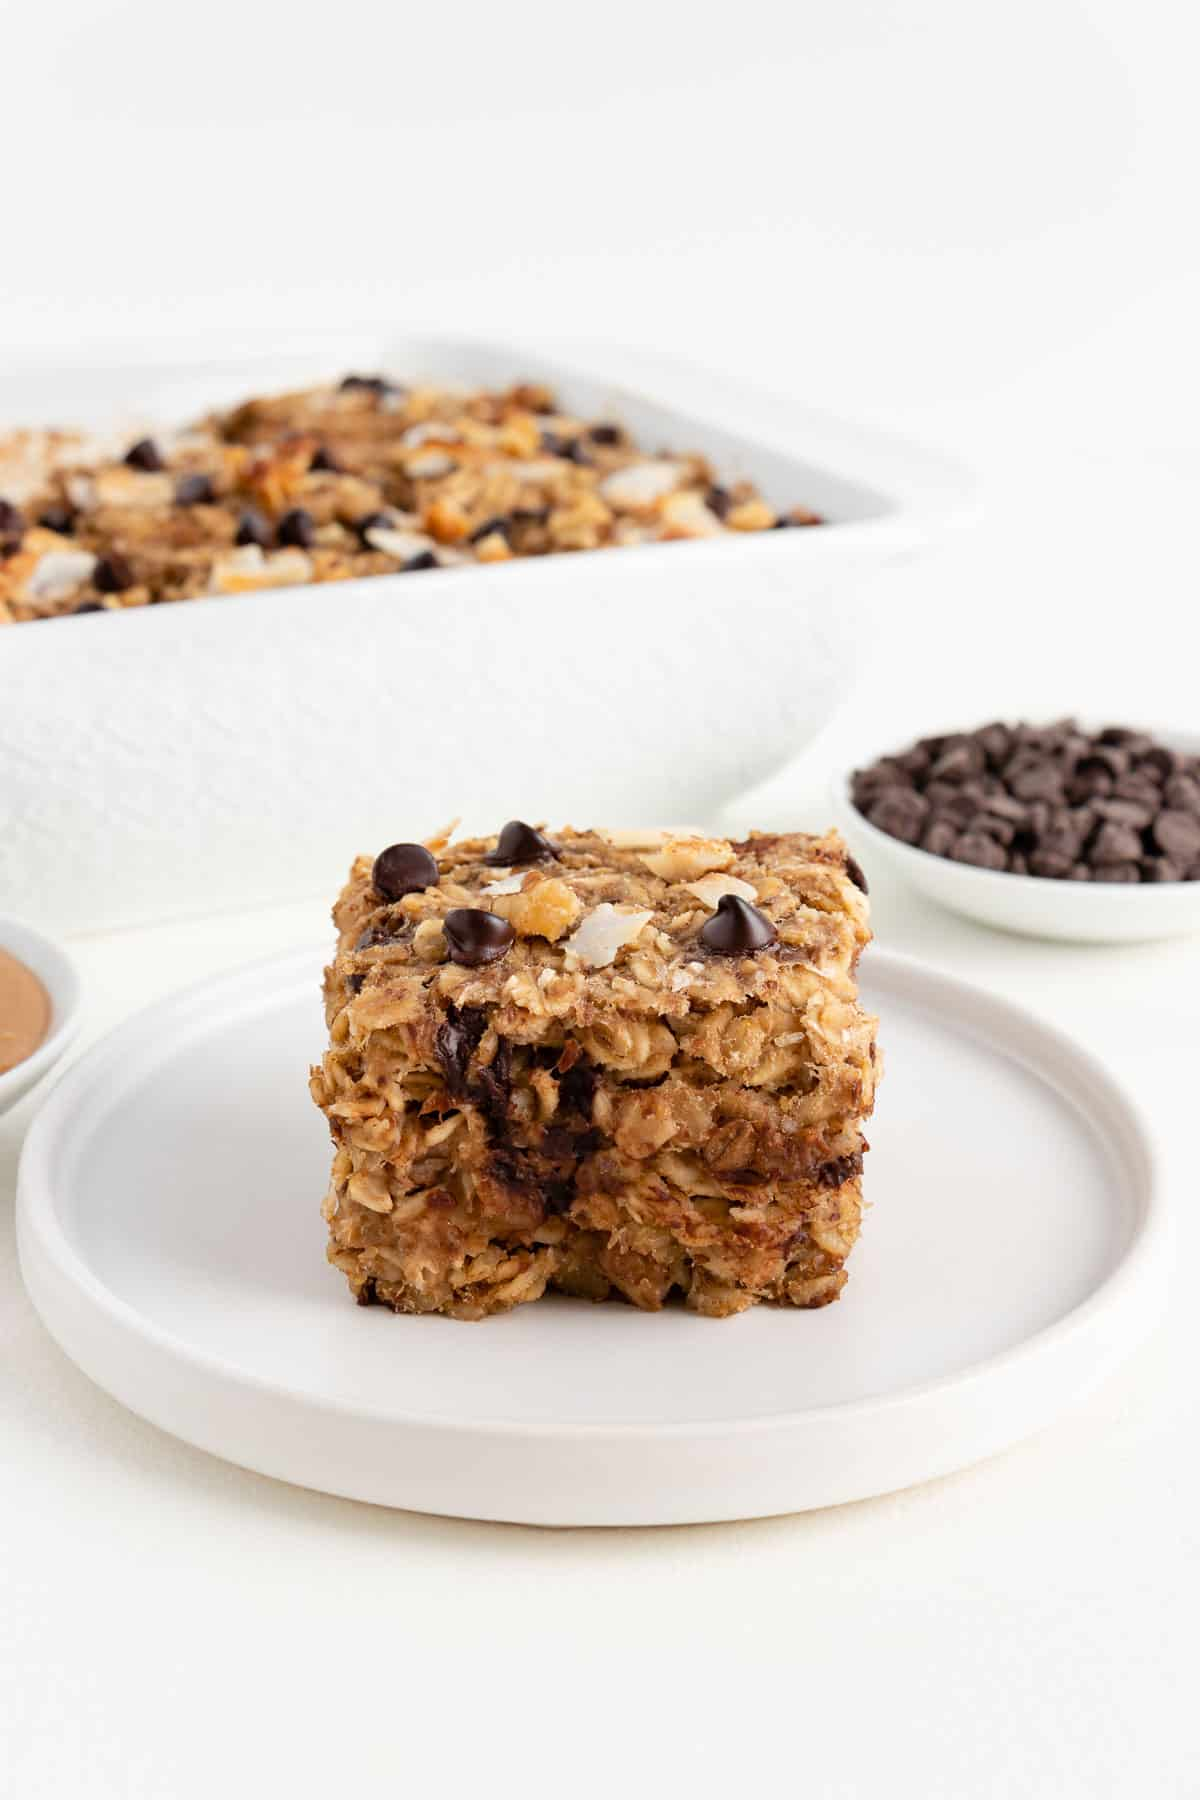 a square of chunky monkey baked oatmeal on a white plate beside a bowl of chocolate chips